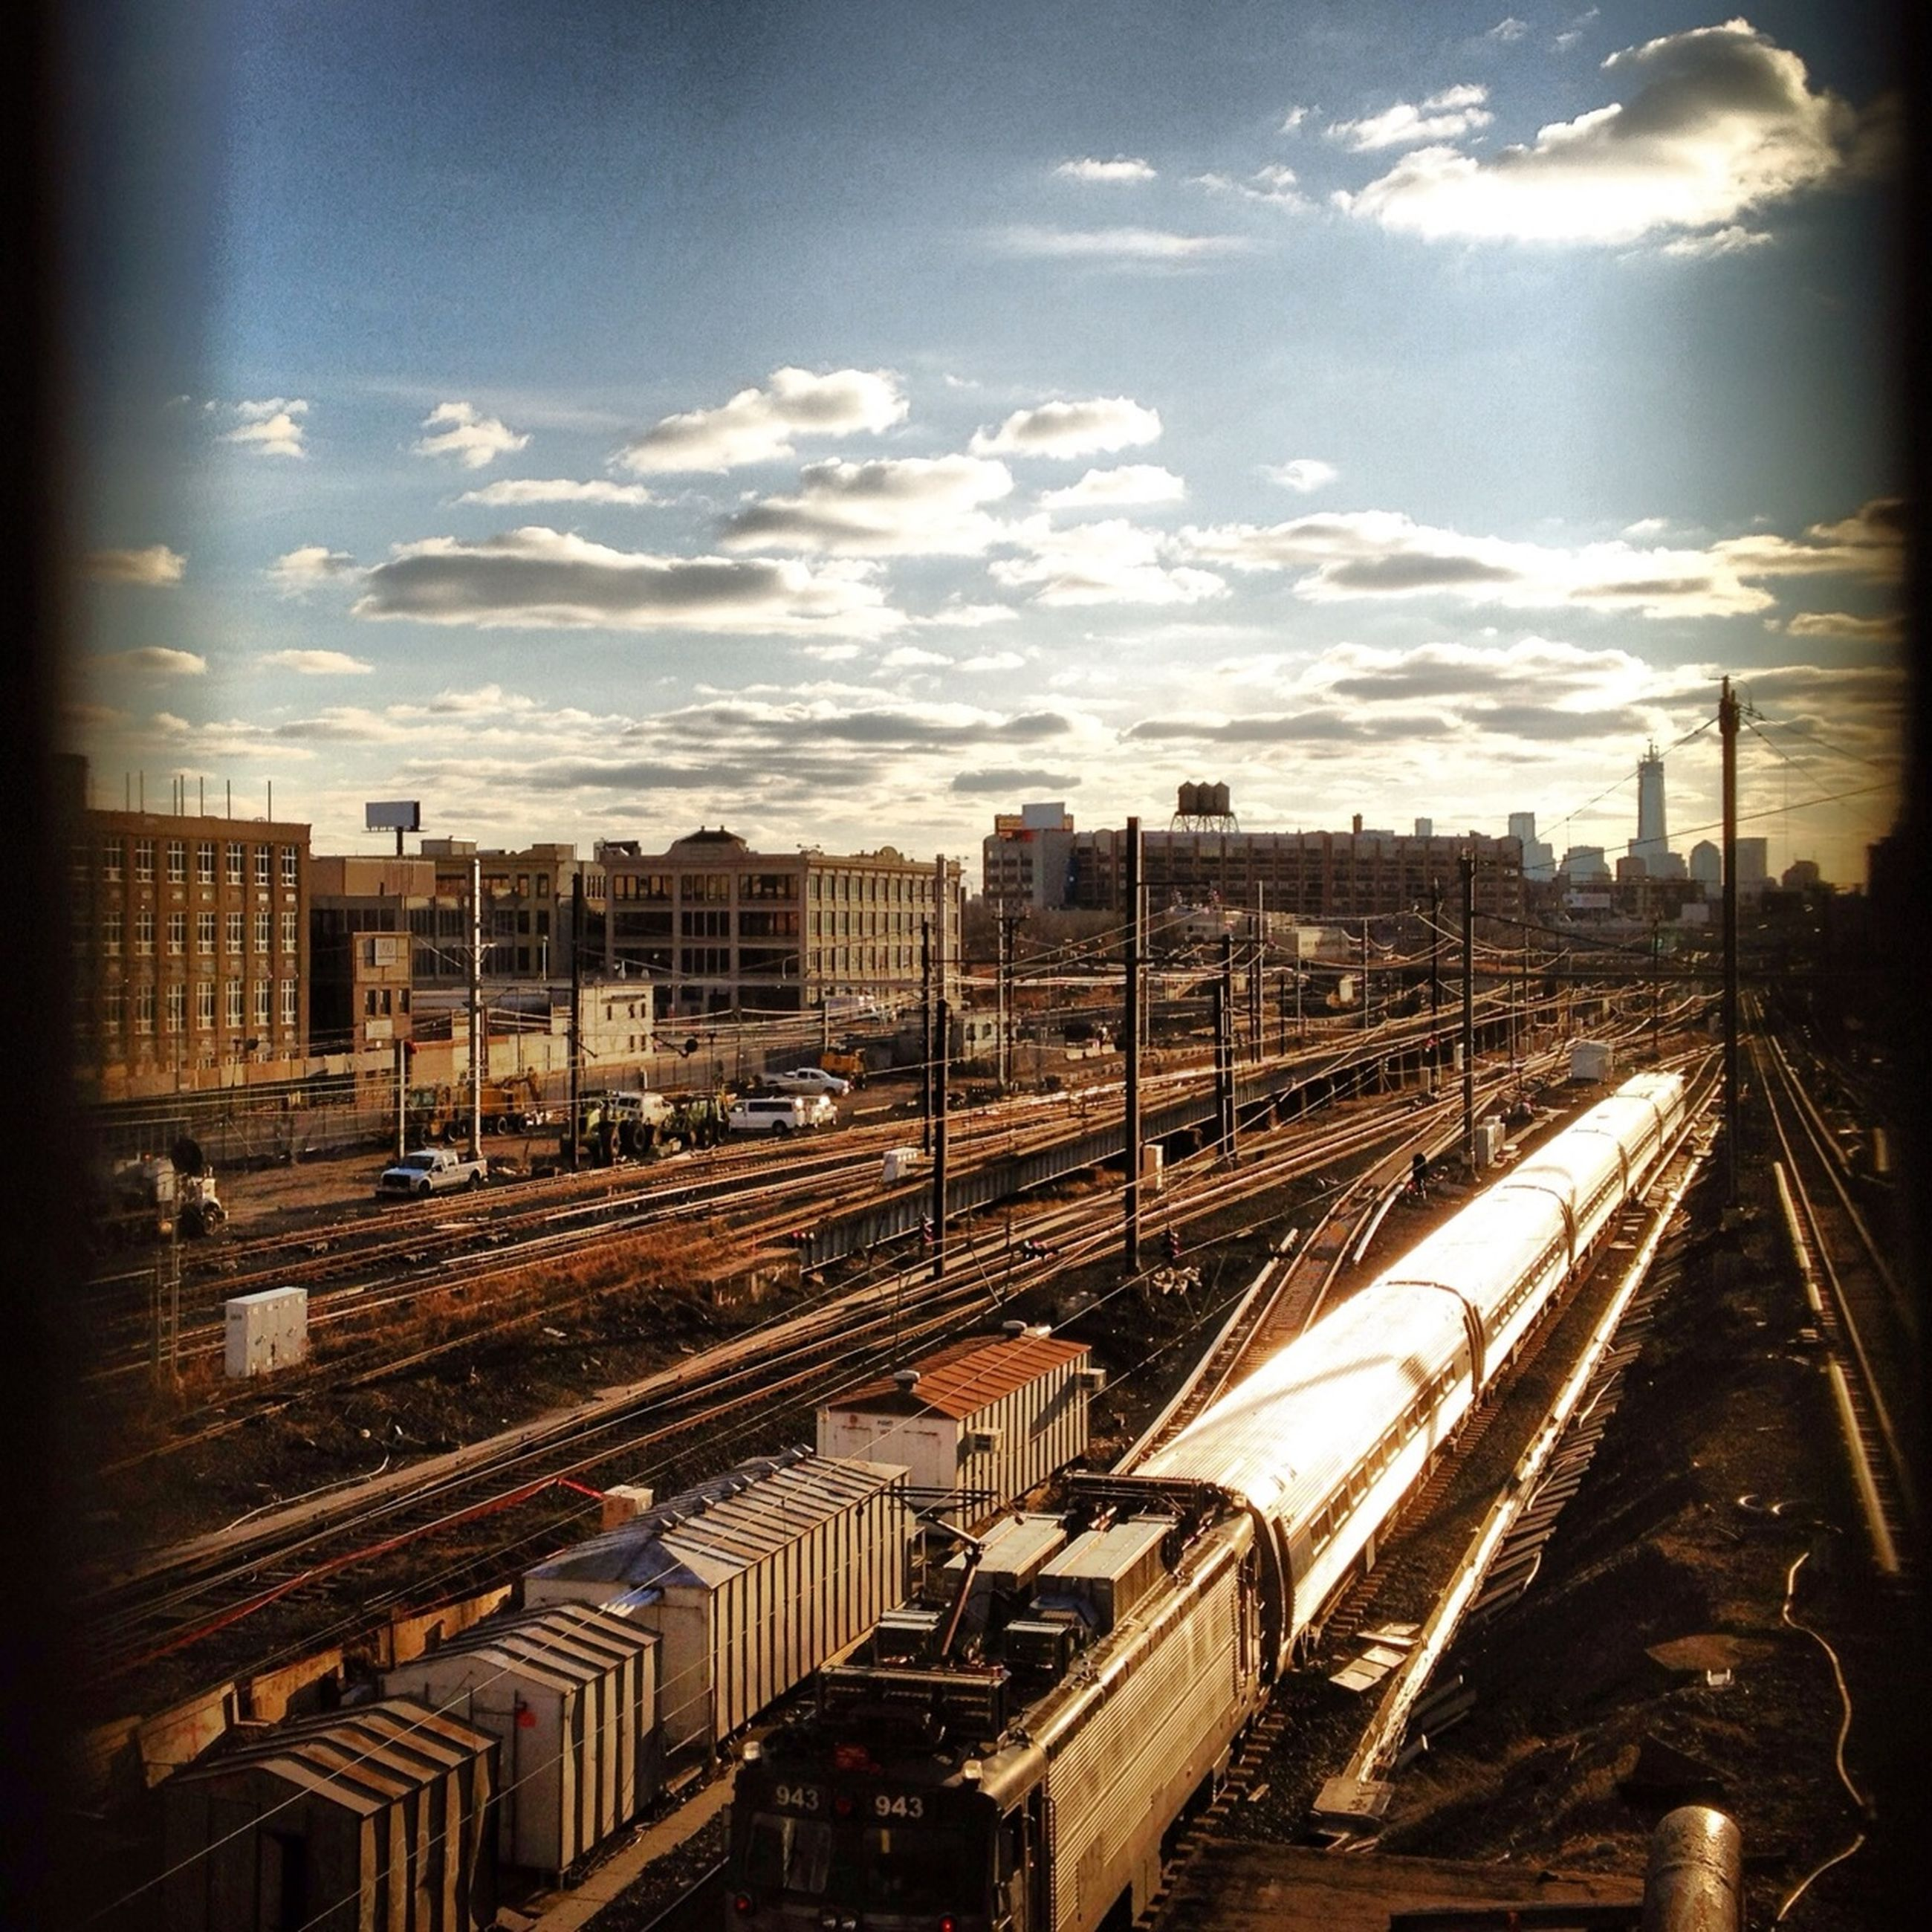 railroad track, architecture, transportation, built structure, rail transportation, public transportation, railroad station, building exterior, railroad station platform, sky, city, high angle view, train - vehicle, cloud - sky, travel, mode of transport, diminishing perspective, city life, cityscape, train